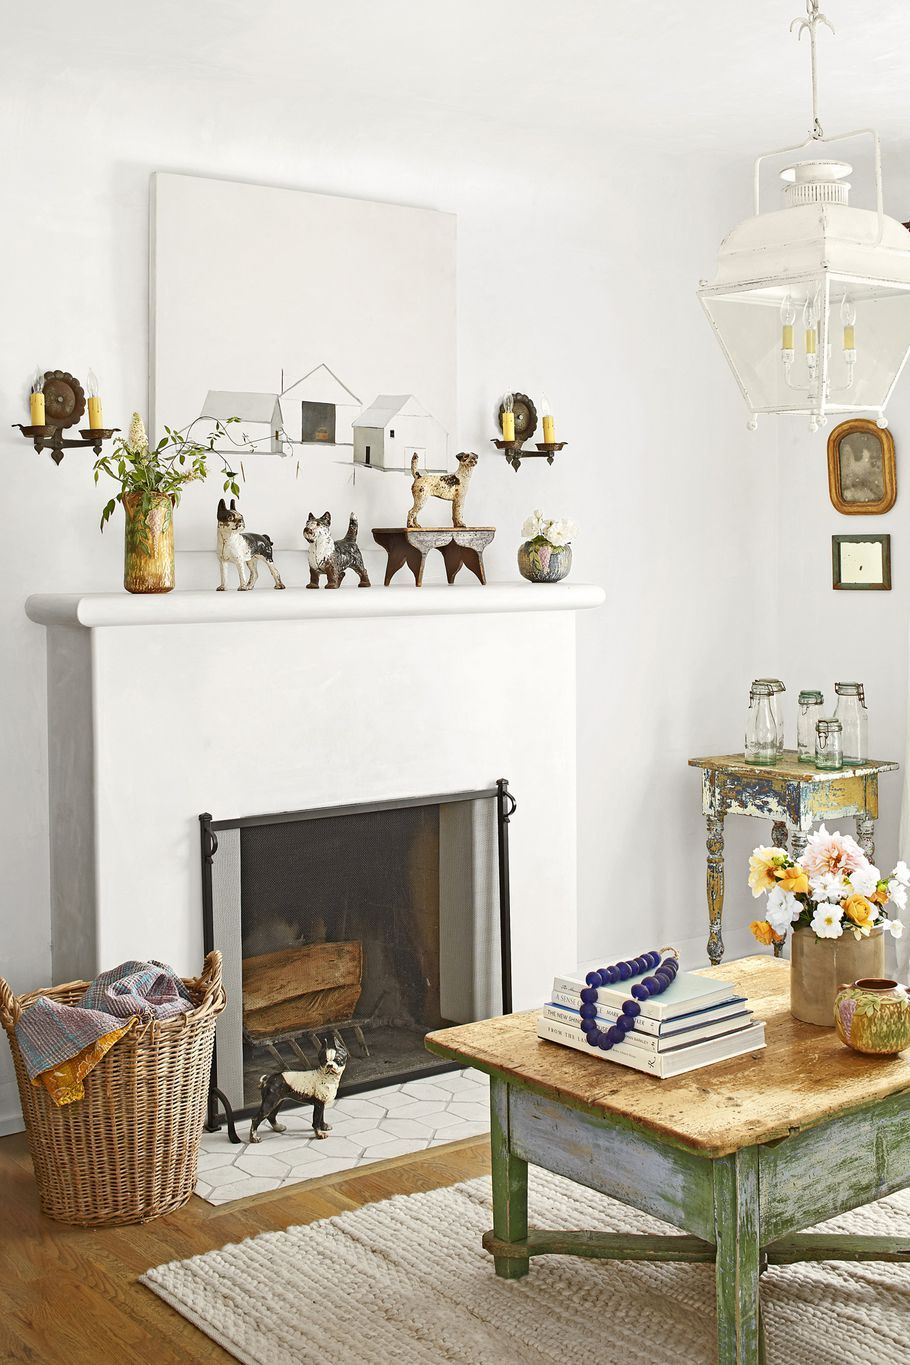 Santa barbara california home decorating ideas also this year old was made for summer parties rh za pinterest